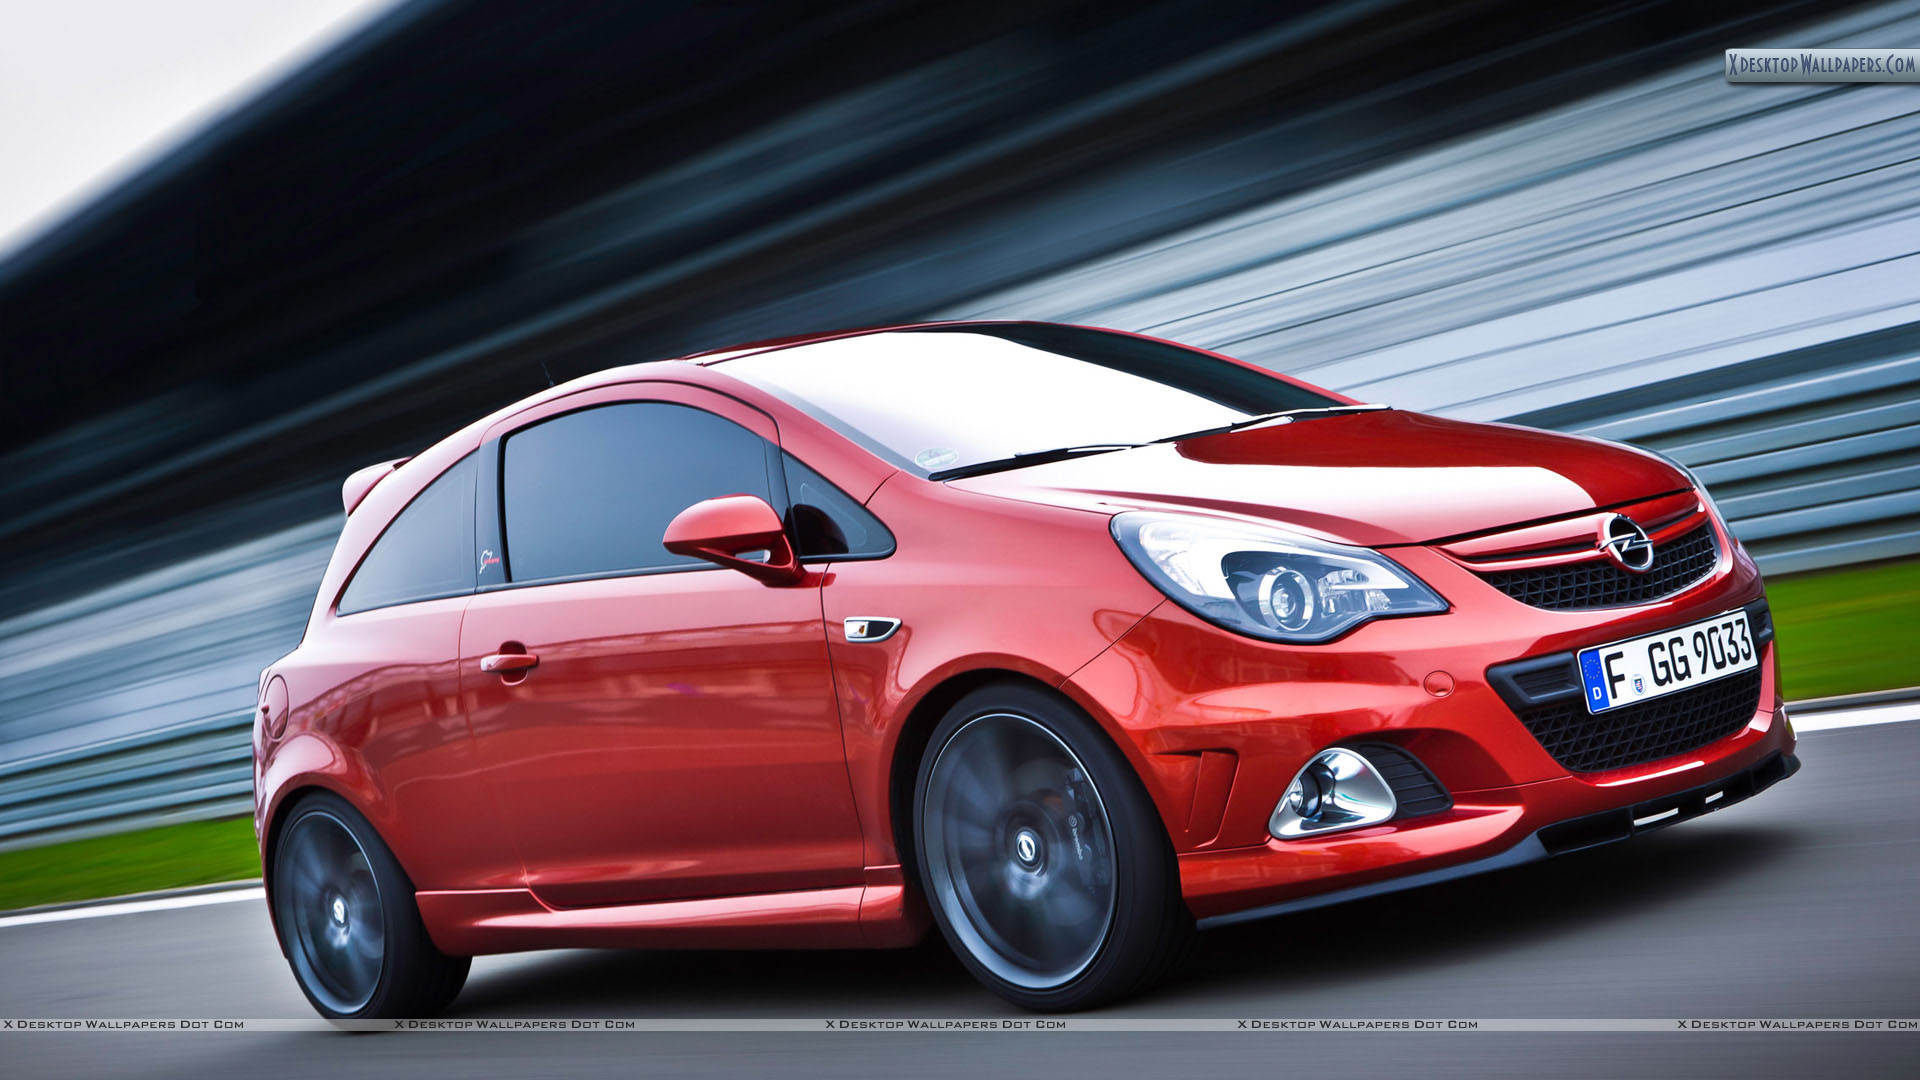 opel corsa opc nurburgring edition red color side pose wallpaper. Black Bedroom Furniture Sets. Home Design Ideas